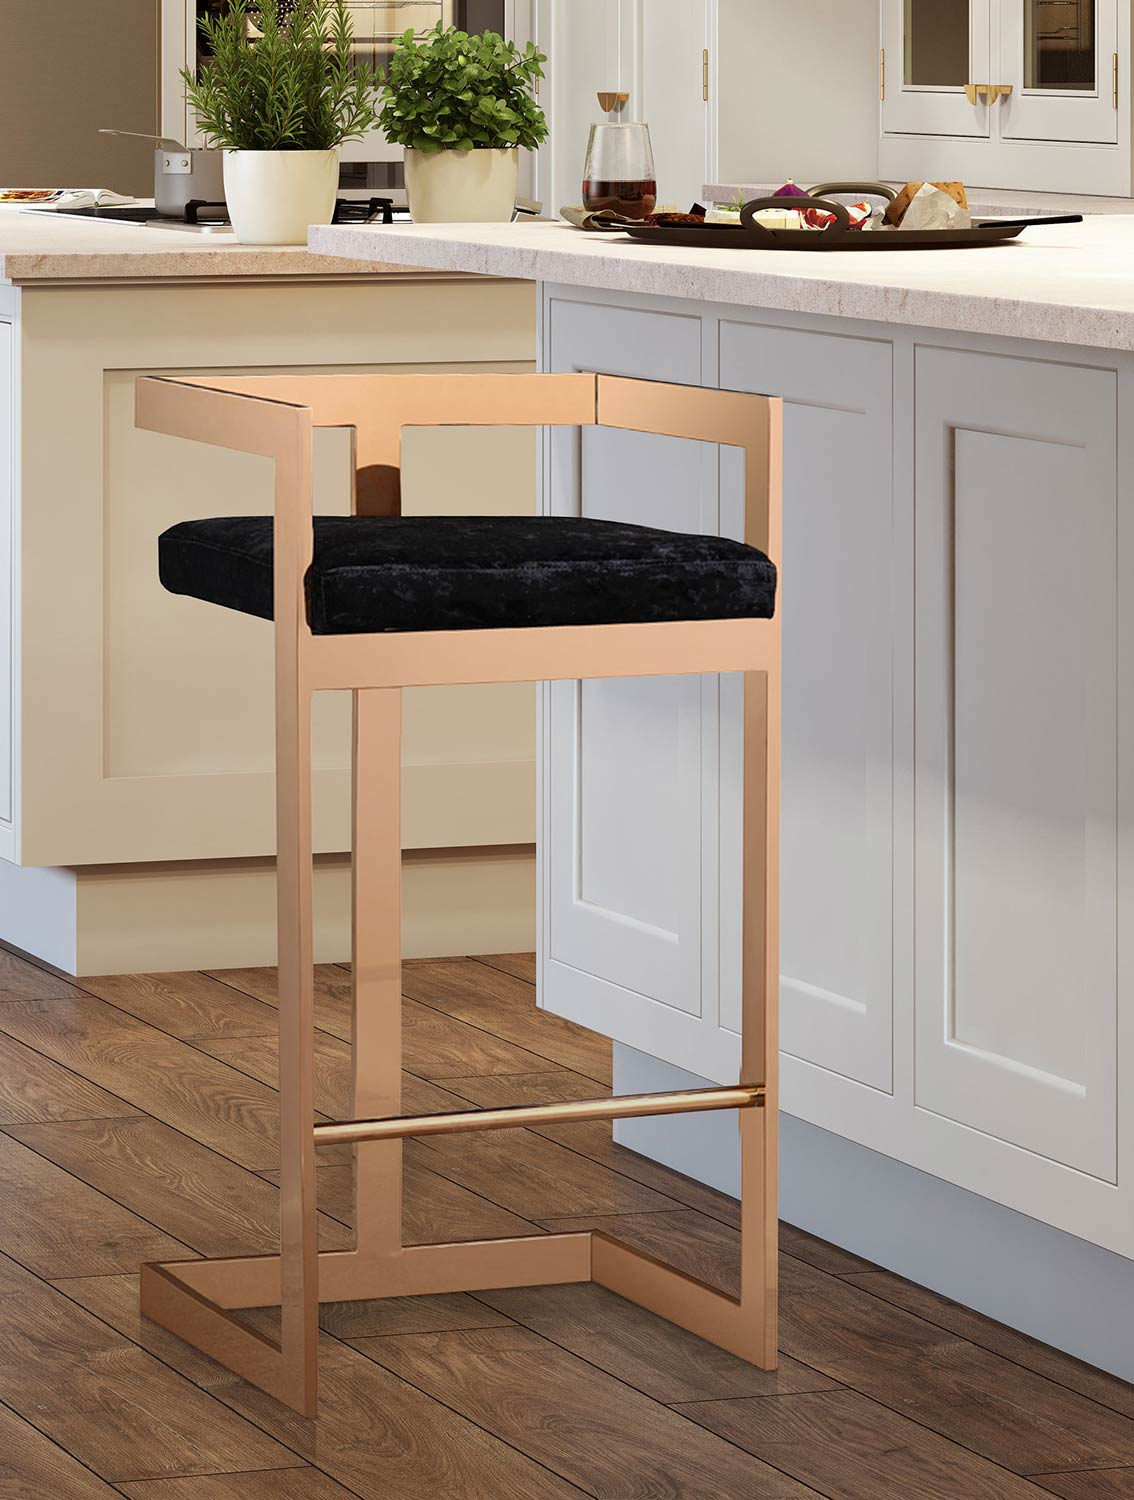 TOV Furniture Marquee Bar Stool - Black/Gold